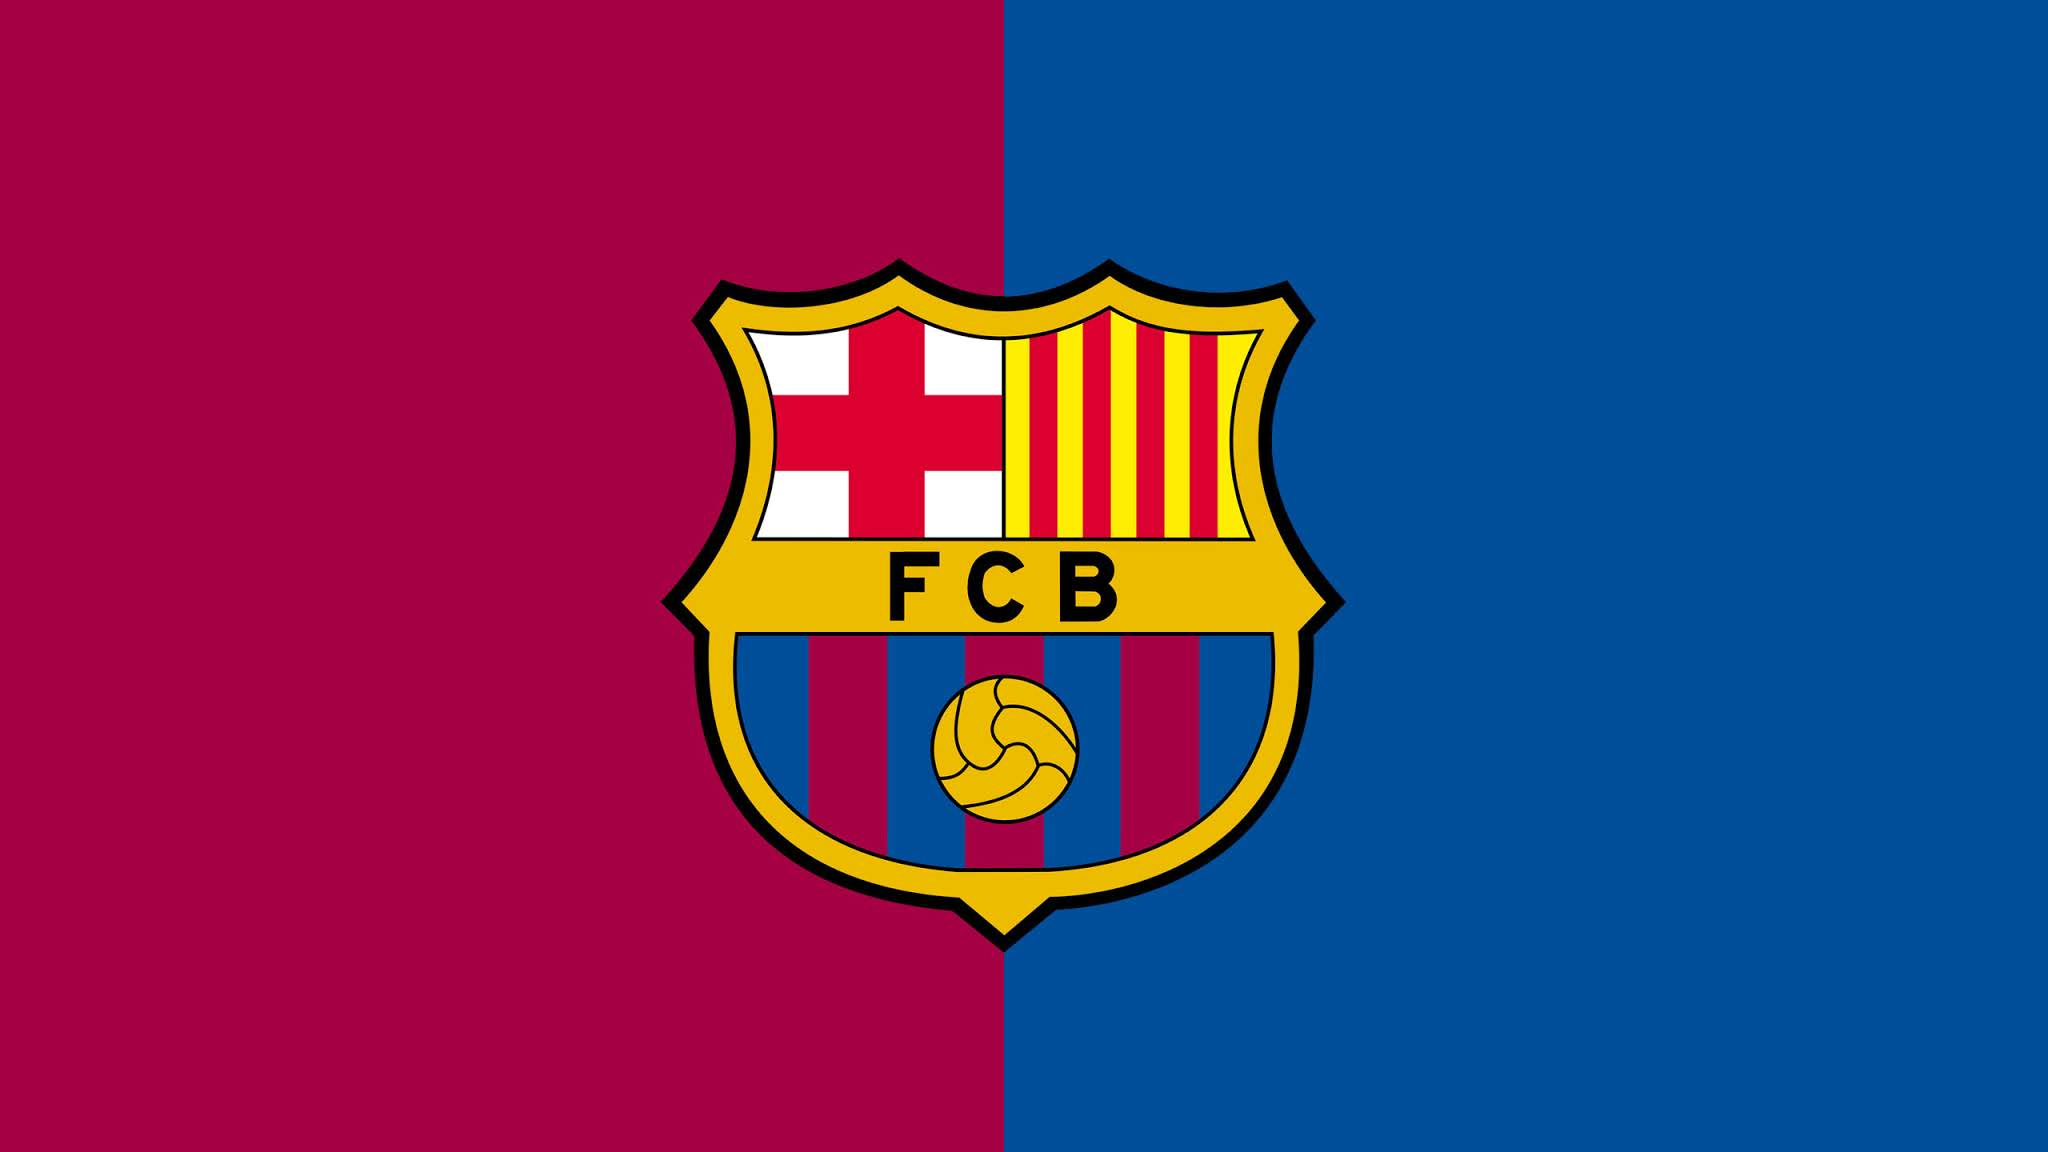 fc barcelona 2020 wallpapers top free fc barcelona 2020 backgrounds wallpaperaccess fc barcelona 2020 wallpapers top free